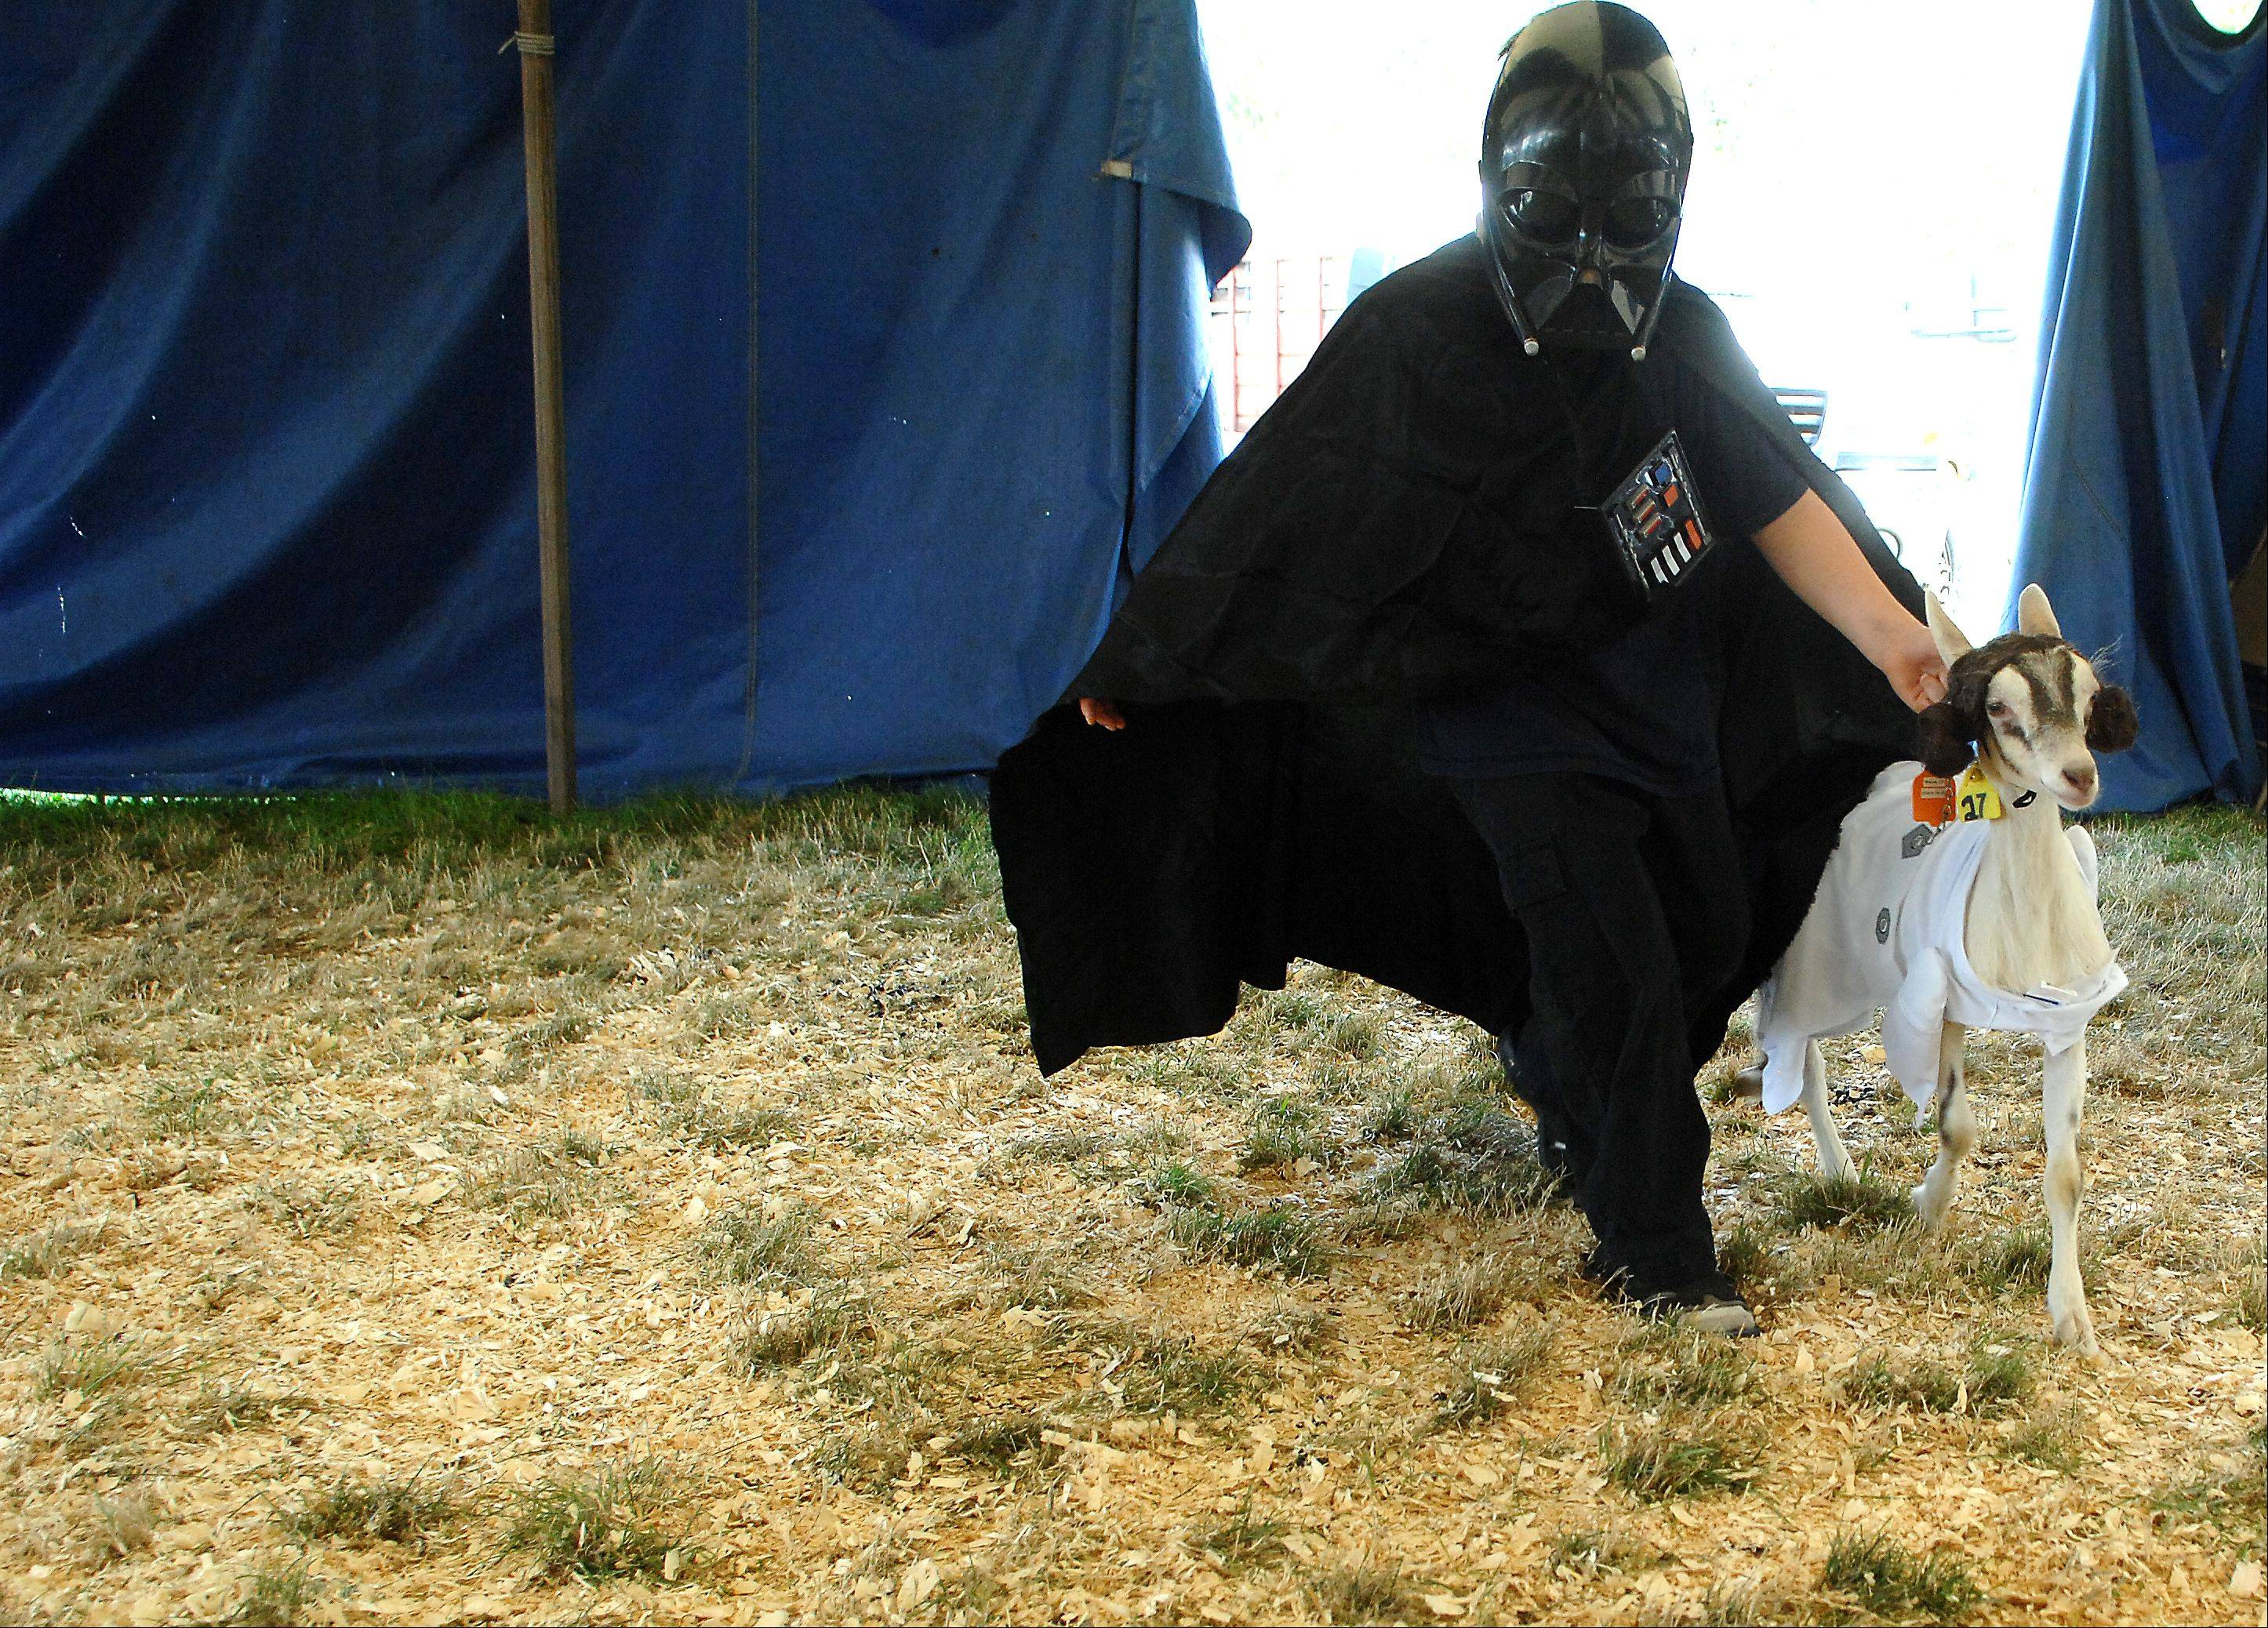 Braydin Winn, 7, of Harvard shows off his Darth Vader costume and his Princess Leia goat during the goat costume show at the McHenry County Fair in Woodstock Thursday.